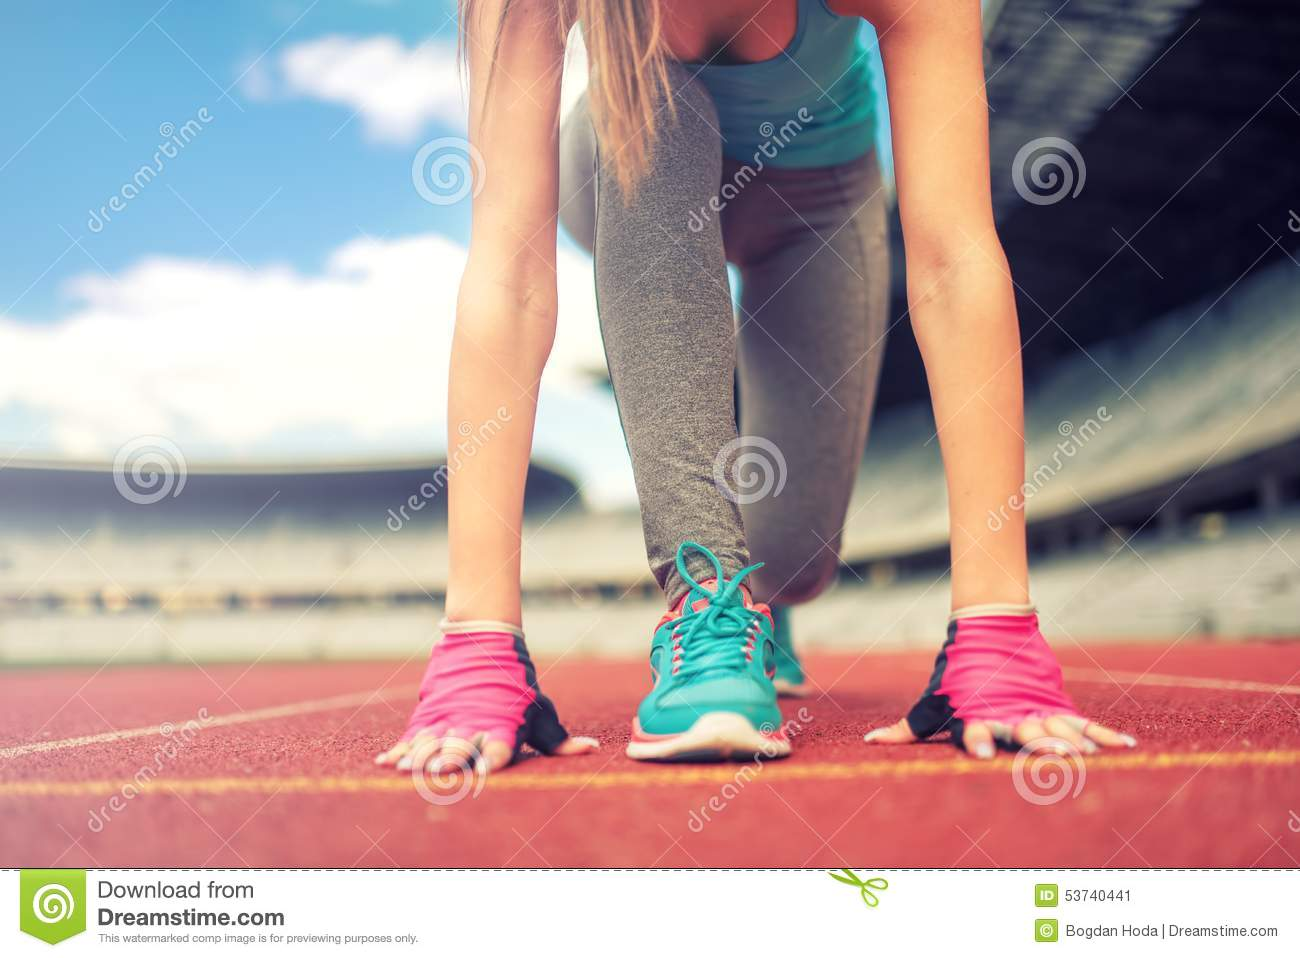 athletic woman going for a jog or run at running track healthy